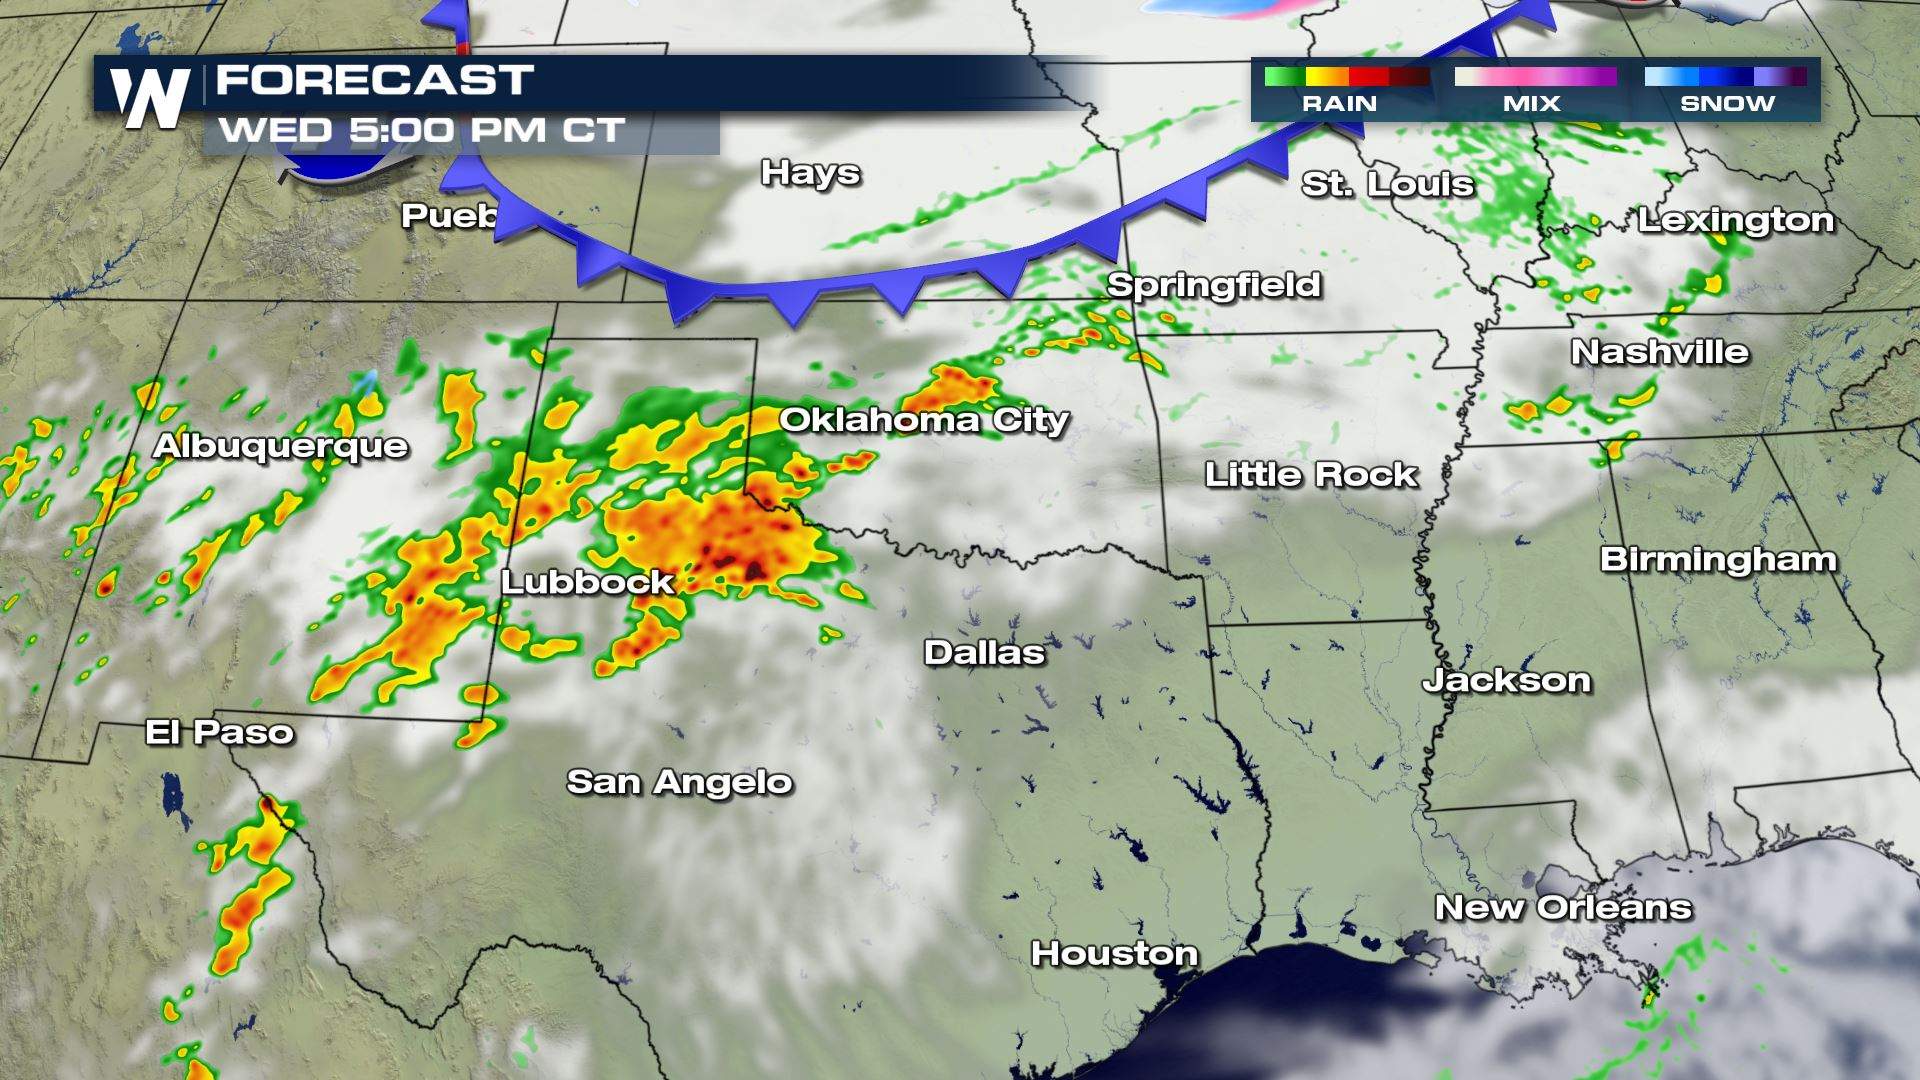 Severe Storm Chances Wednesday from Arizona to Texas